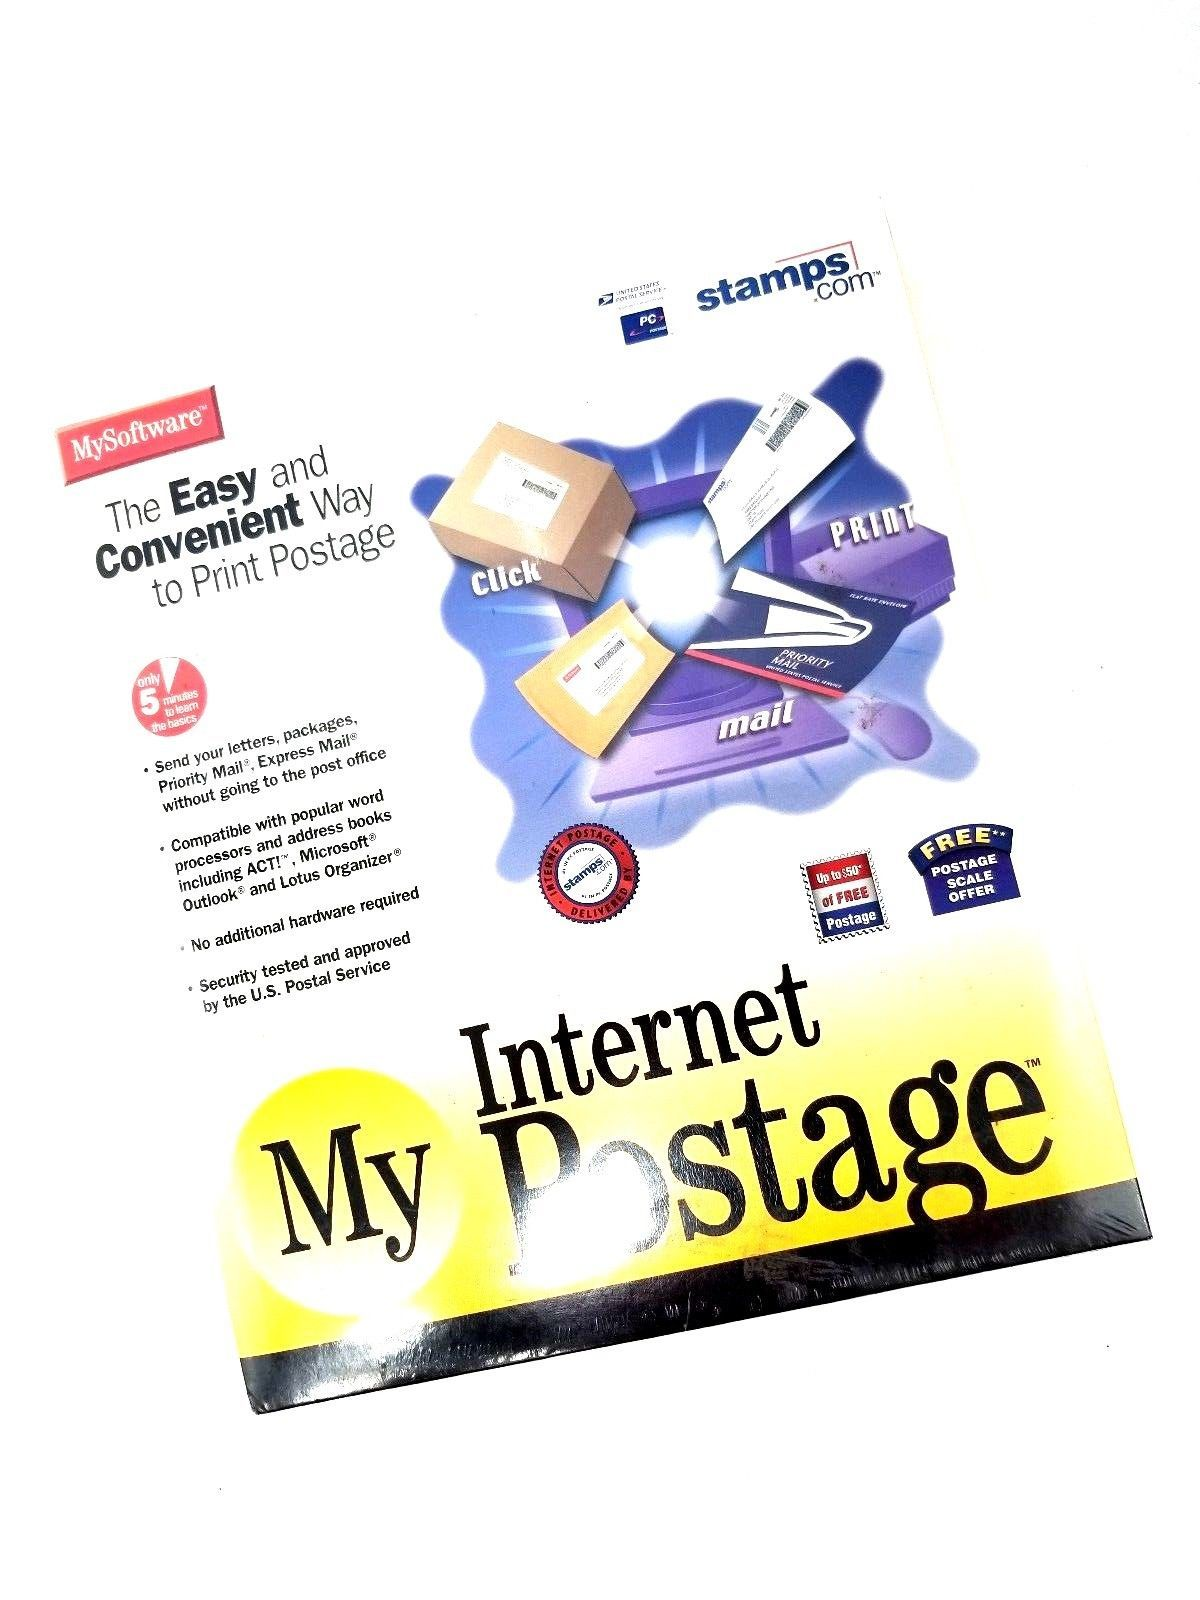 My Software: My Internet Postage by Stamps.com Free Postage Scale Offer New